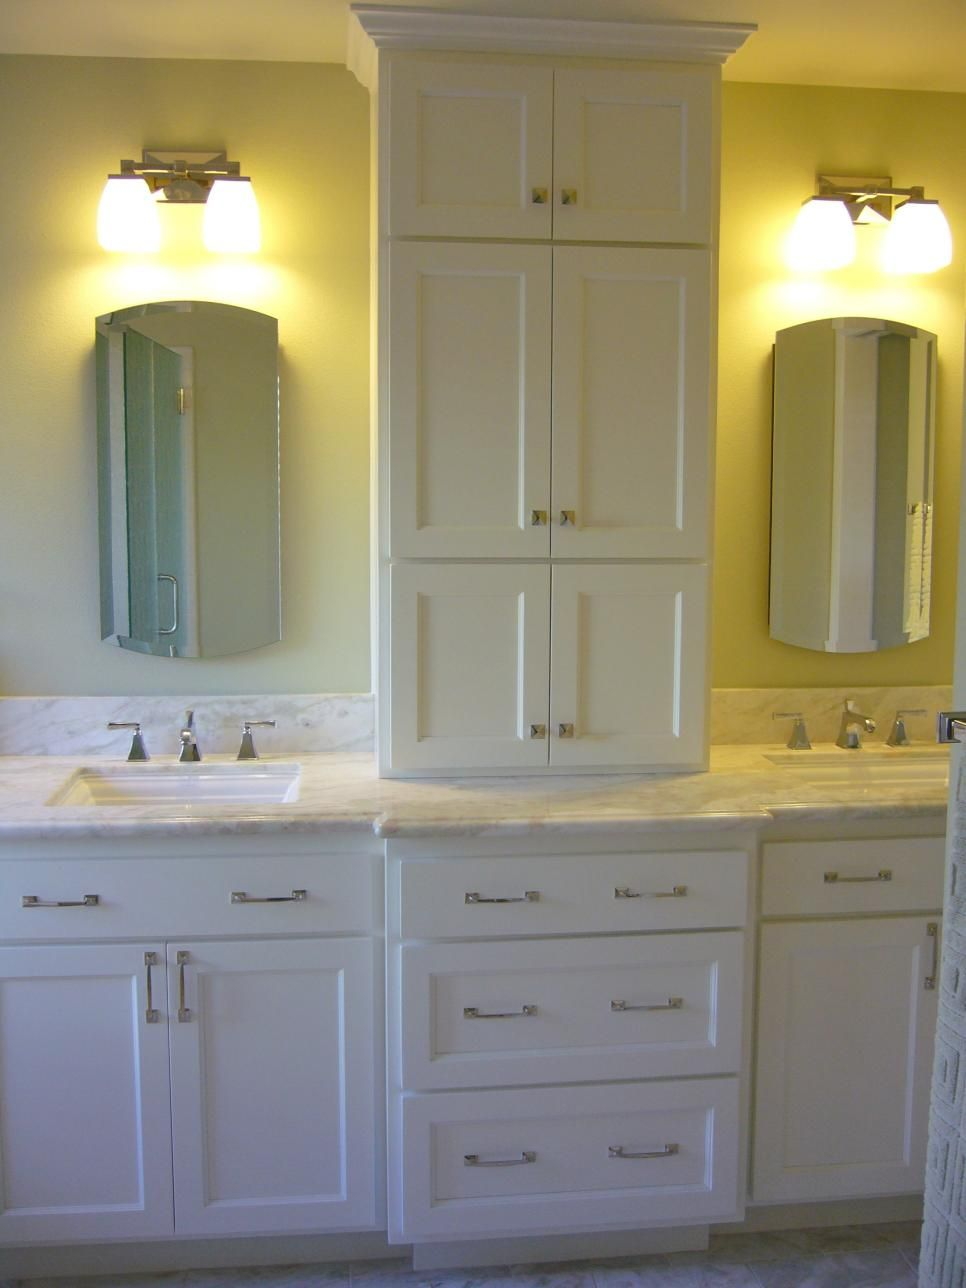 Custom Bathroom Vanities Naperville bathroom vanities for any style | sinks, storage and bathroom vanities